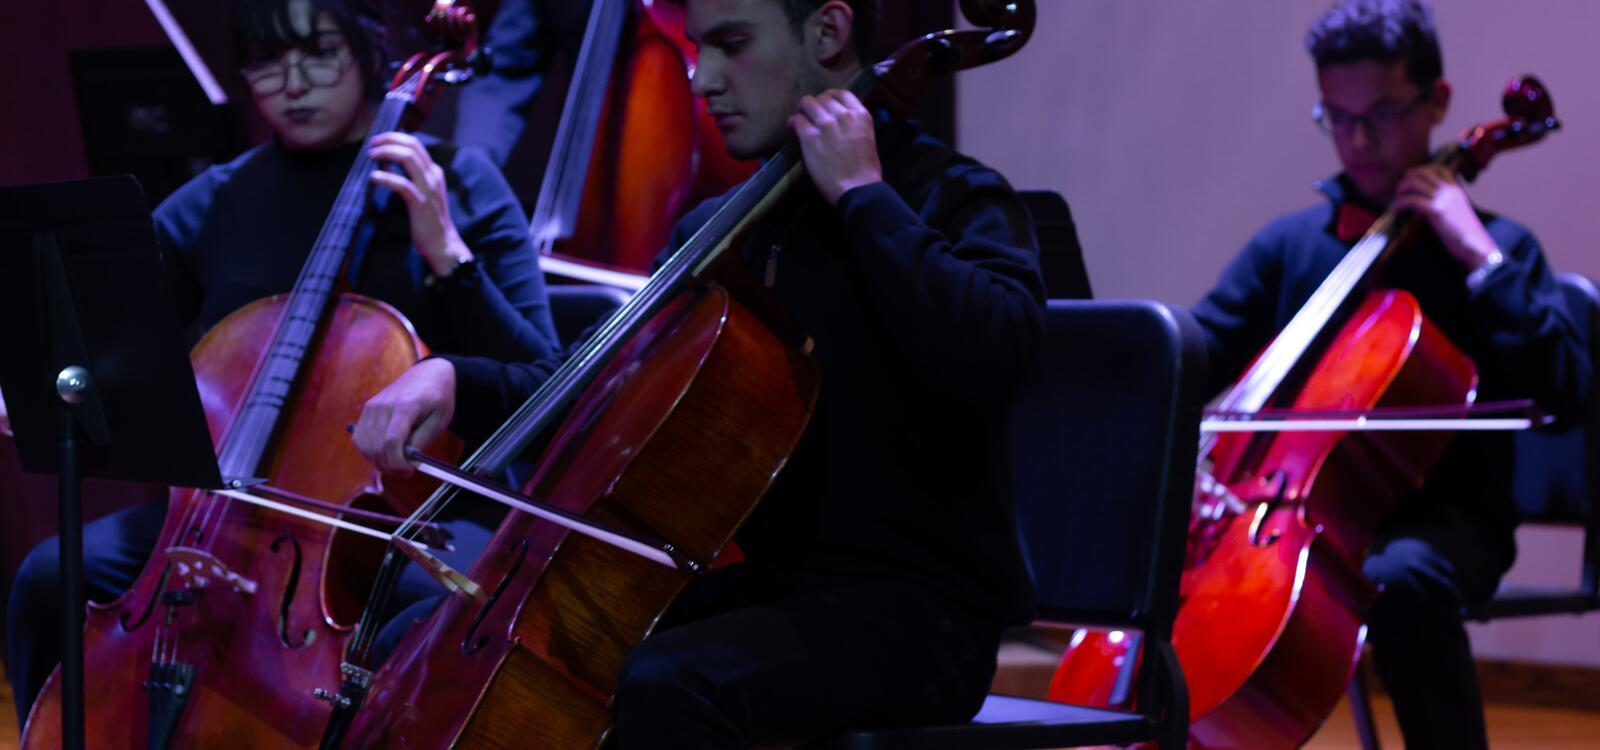 Three students sitting in chairs read their music as they play their cellos